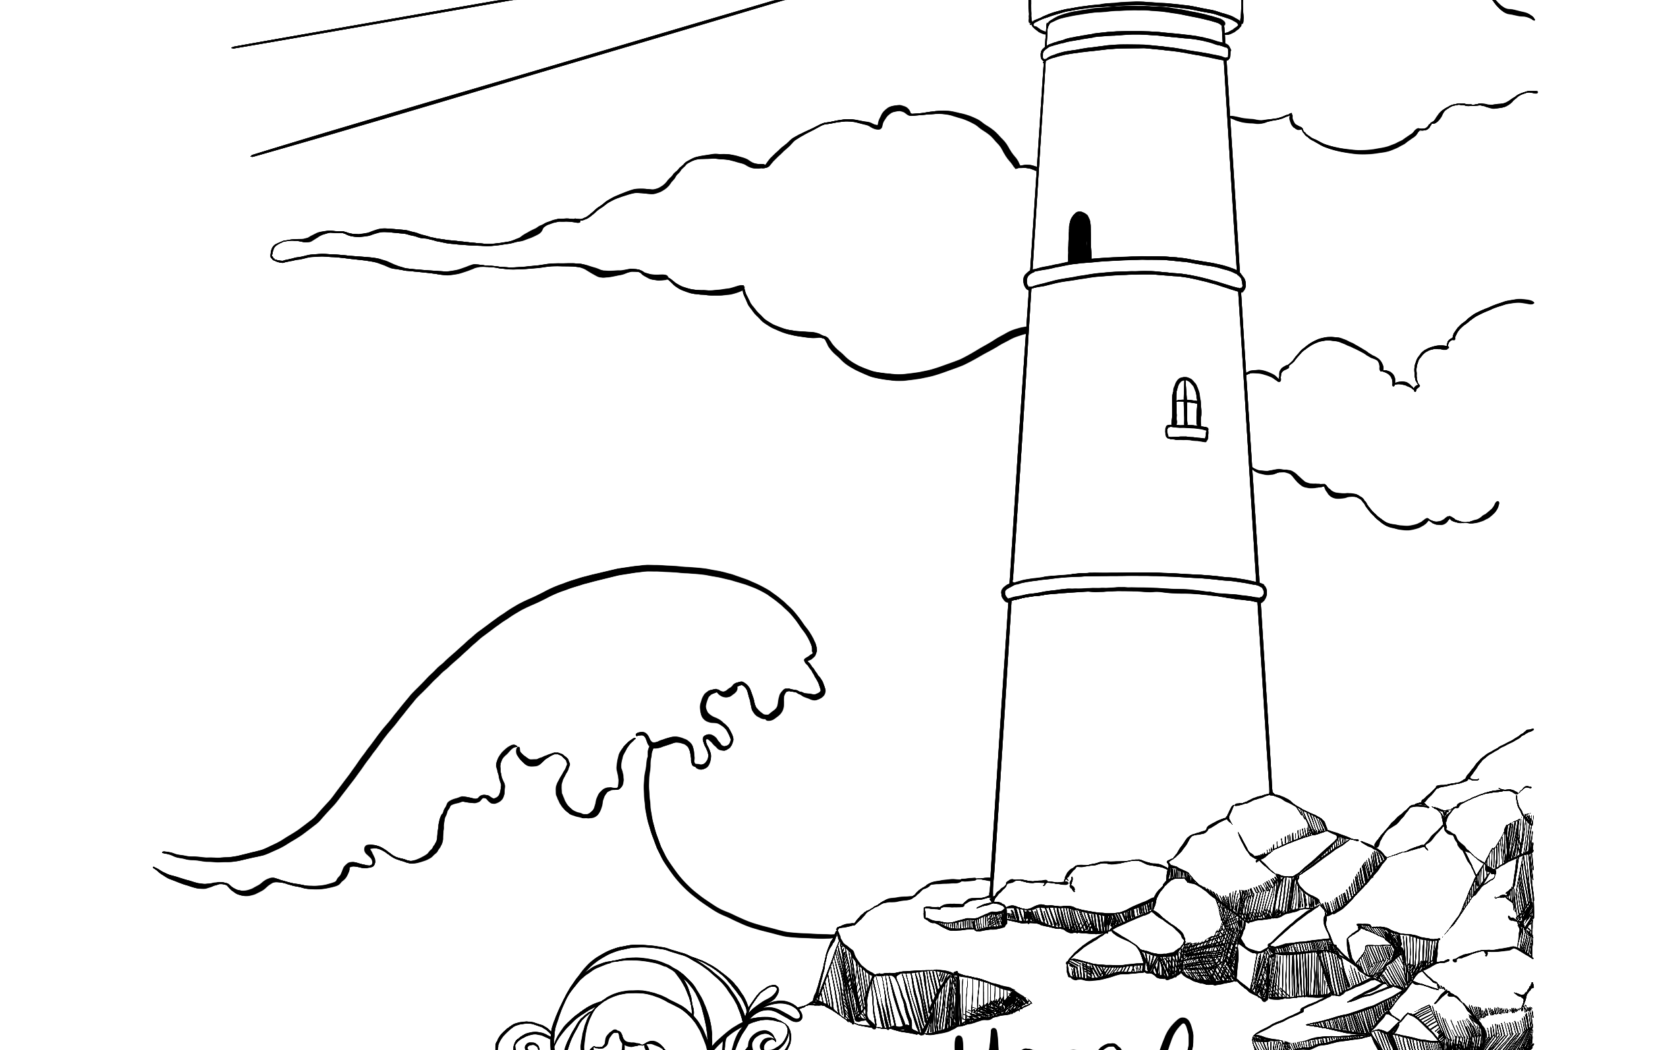 Lighthouse Line Drawing at GetDrawings com | Free for